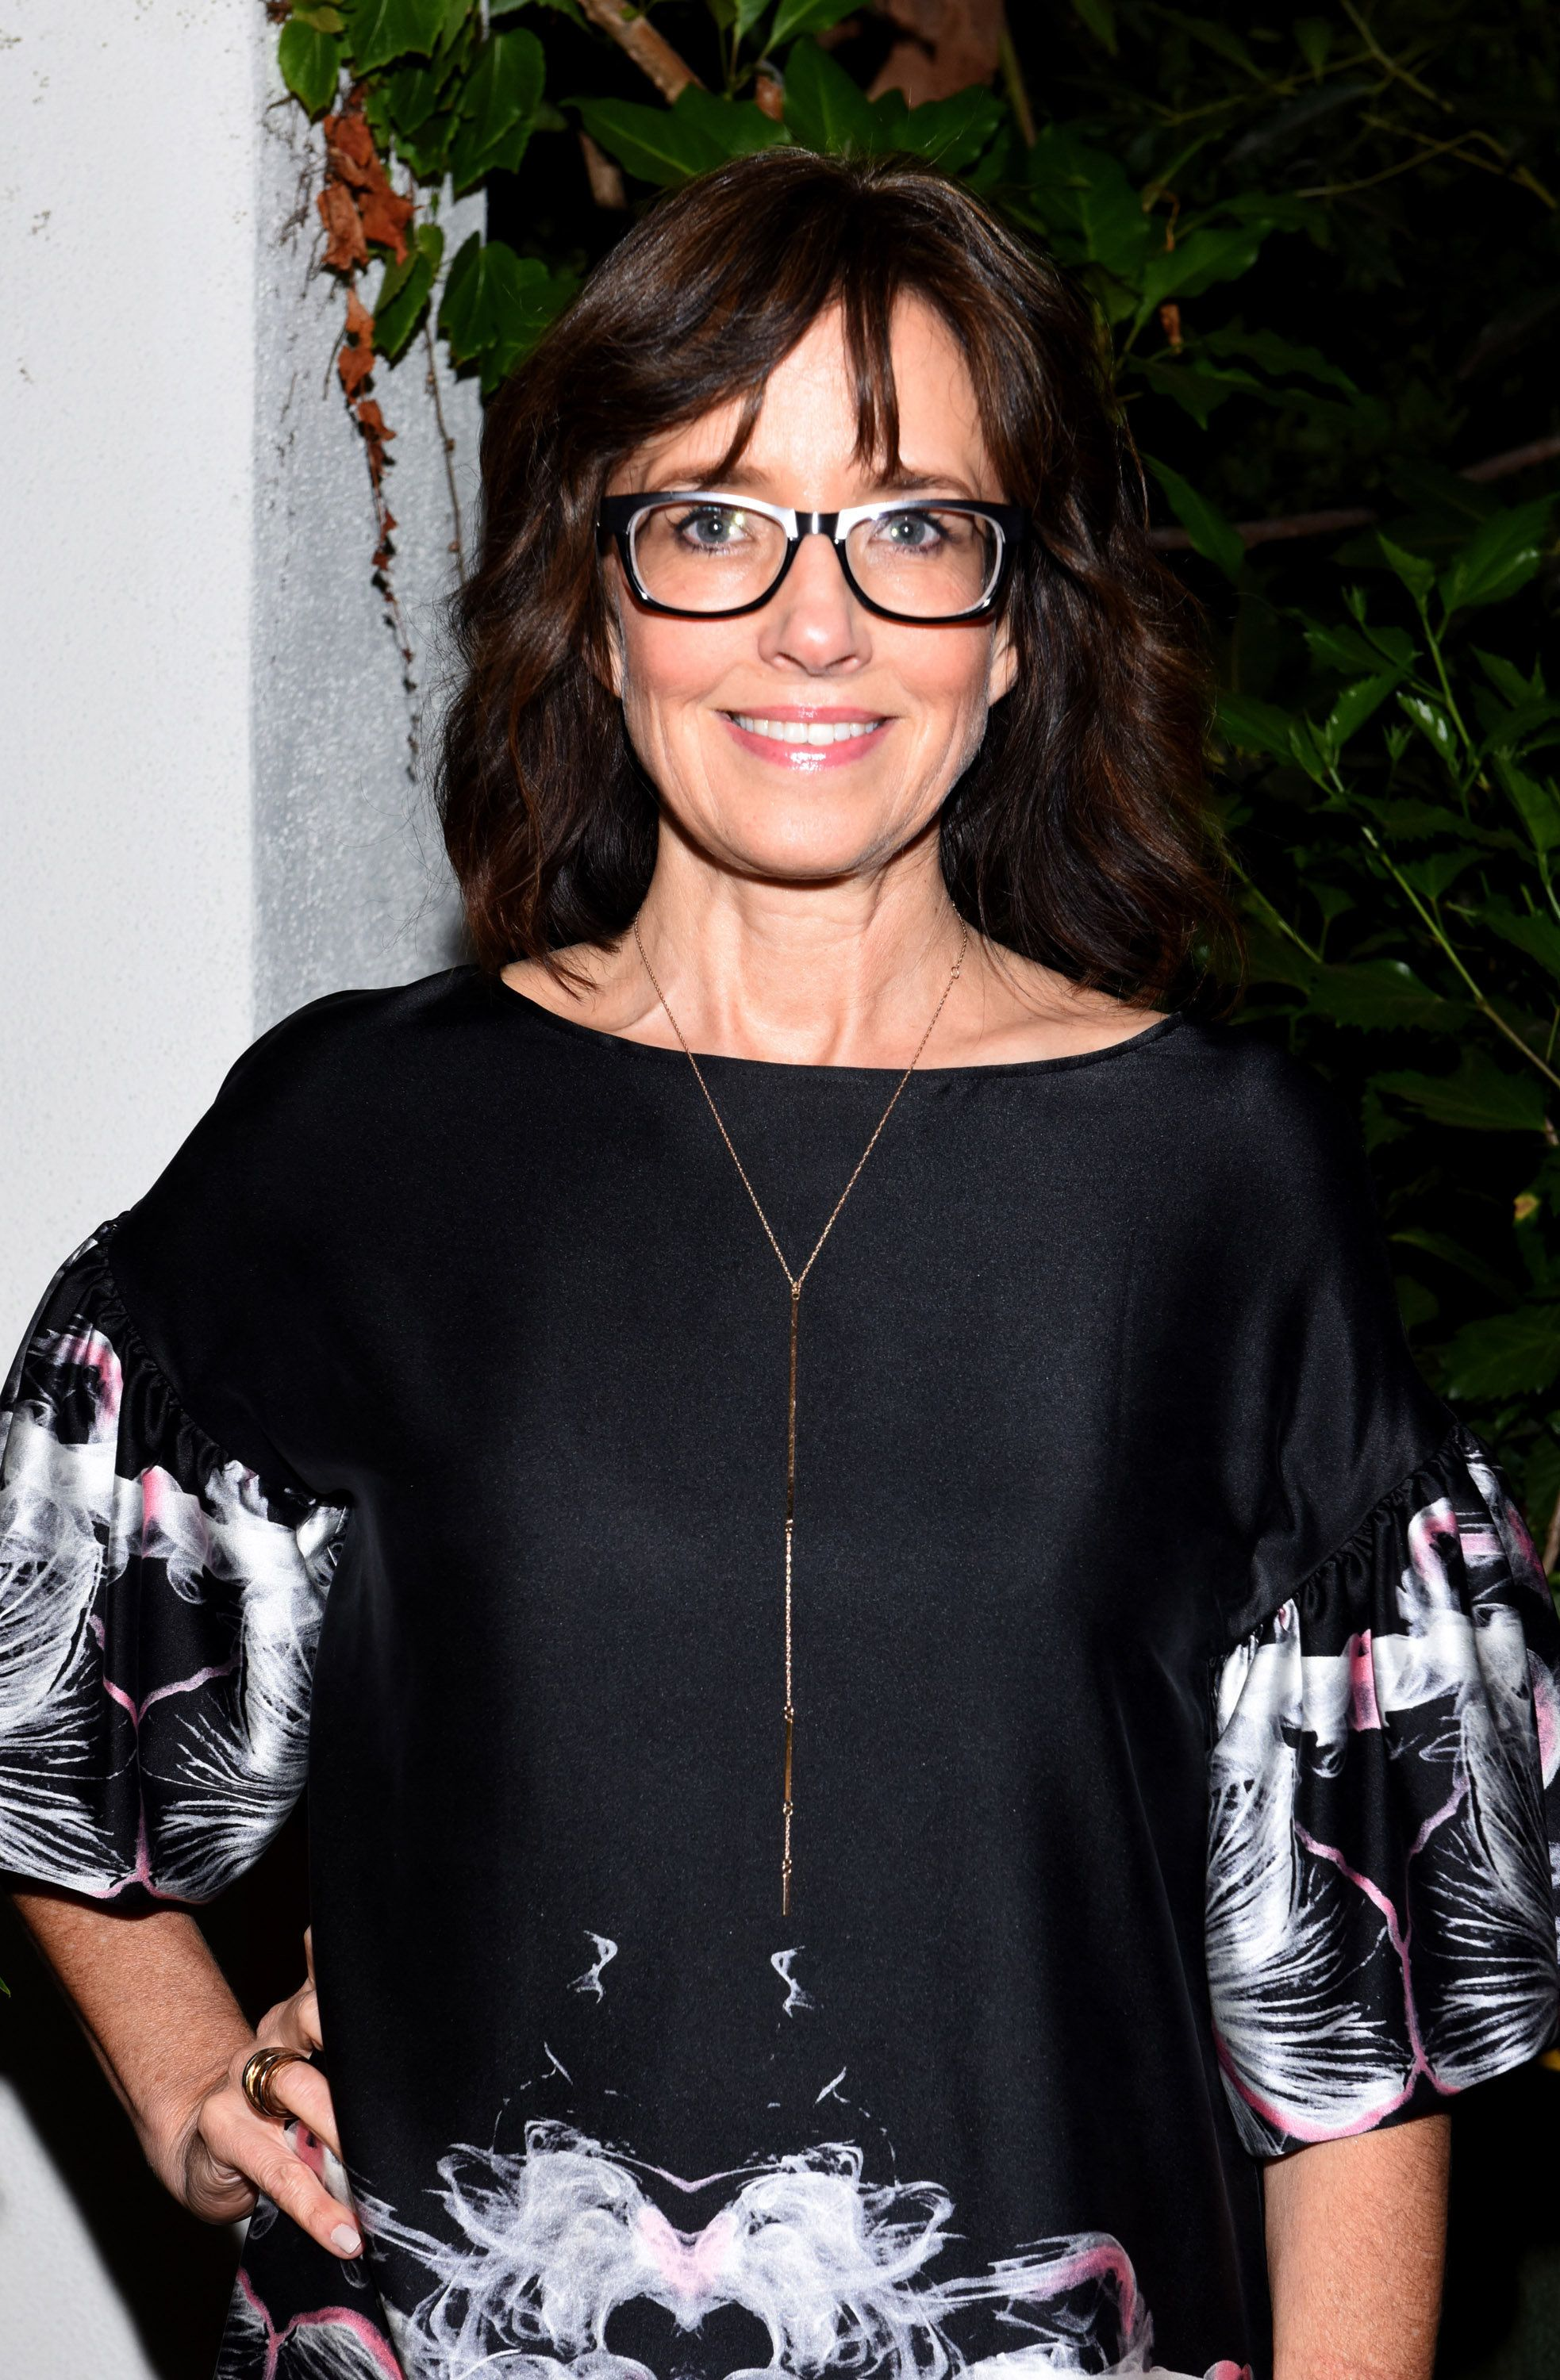 LOS ANGELES, CA - NOVEMBER 01:  Director Lesley Chilcott attends the Google Made With Code Party In Honor Of CODEGIRL on November 1, 2015 in Los Angeles, California.  (Photo by Vivien Killilea/Getty Images for Full Picture)